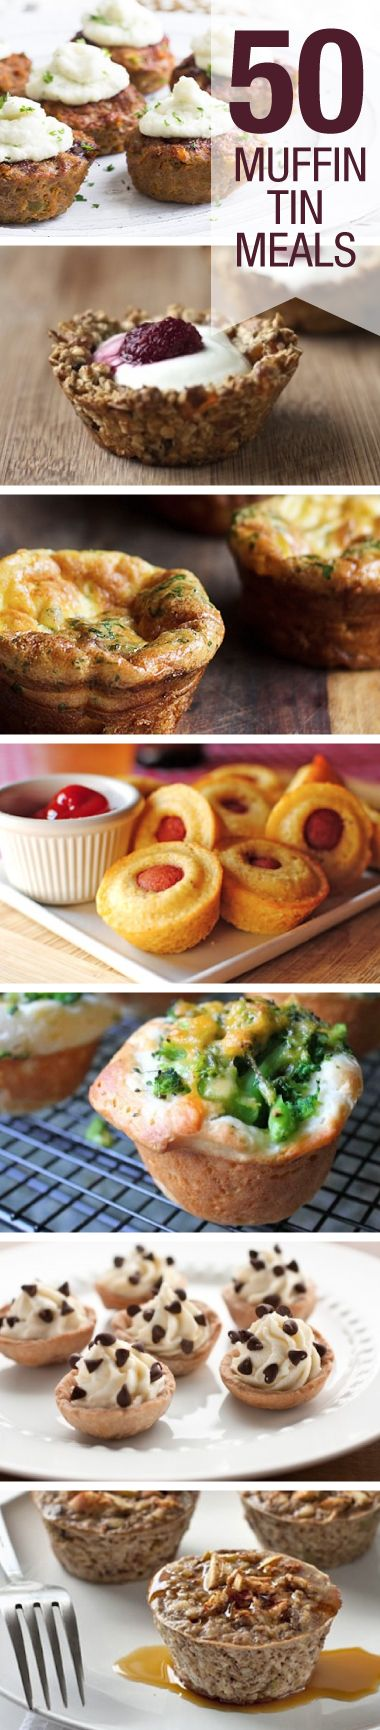 Check out these 50 meals you can make in a muffin tin! So many great ideas-was looking for kids stuff-but look at the party nibbles you can do!!!